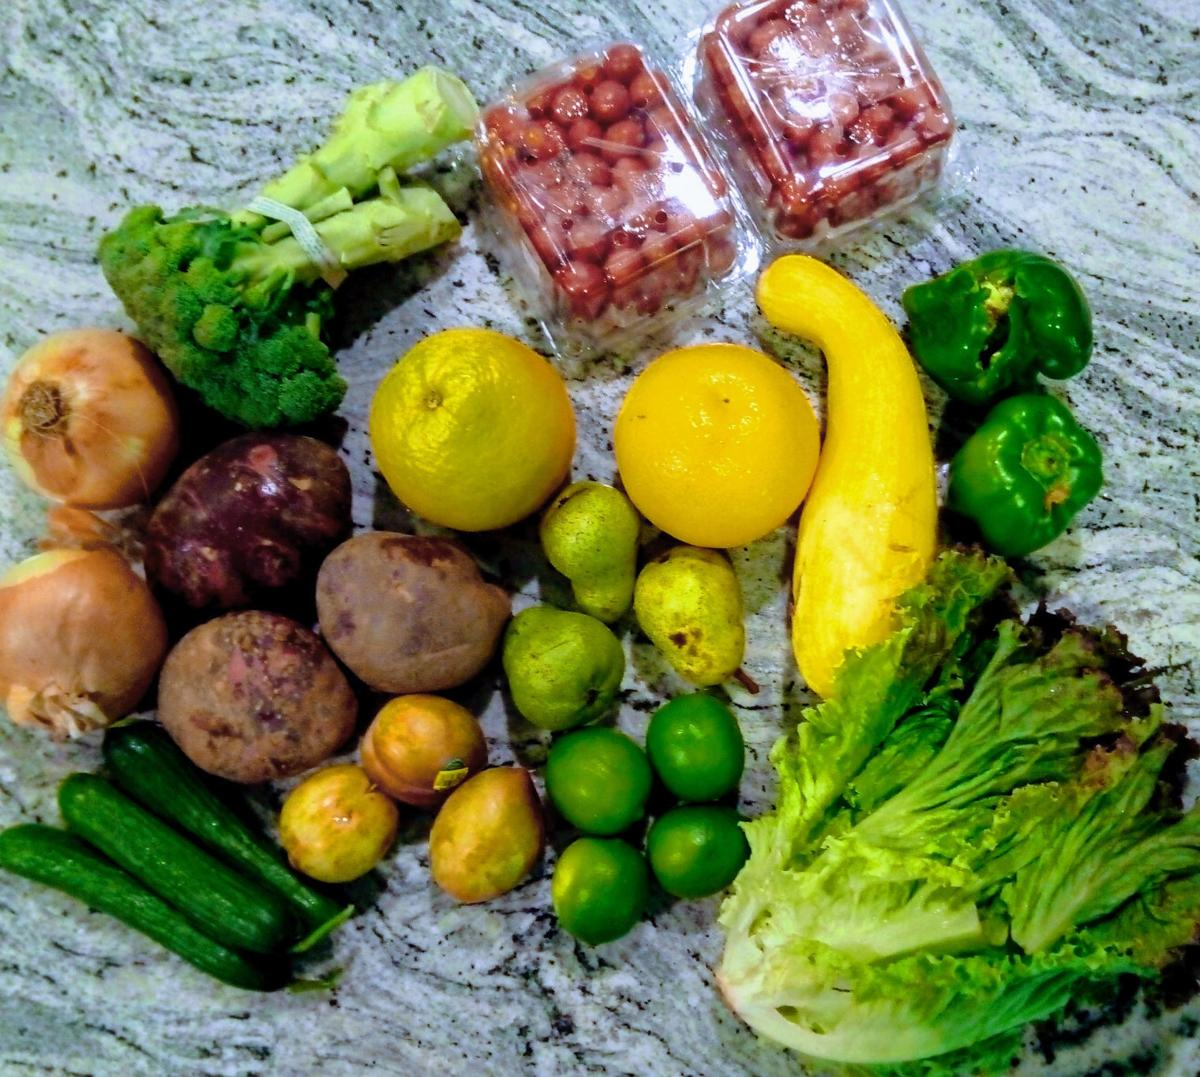 I wanted to save the planet. Would eating ugly food help?